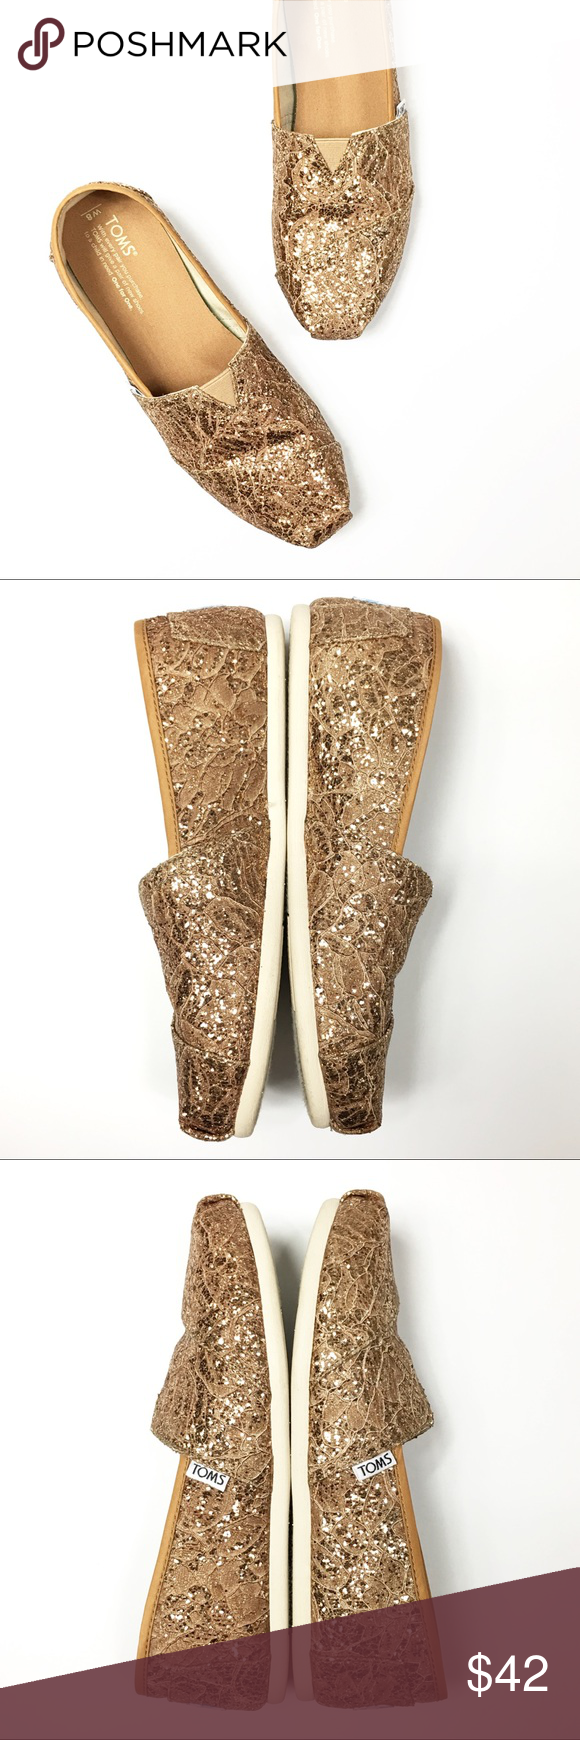 1bee975a67d Toms Classic Rose Gold Lace Glitz Slip On Shoes Style  classic slip on shoes  with